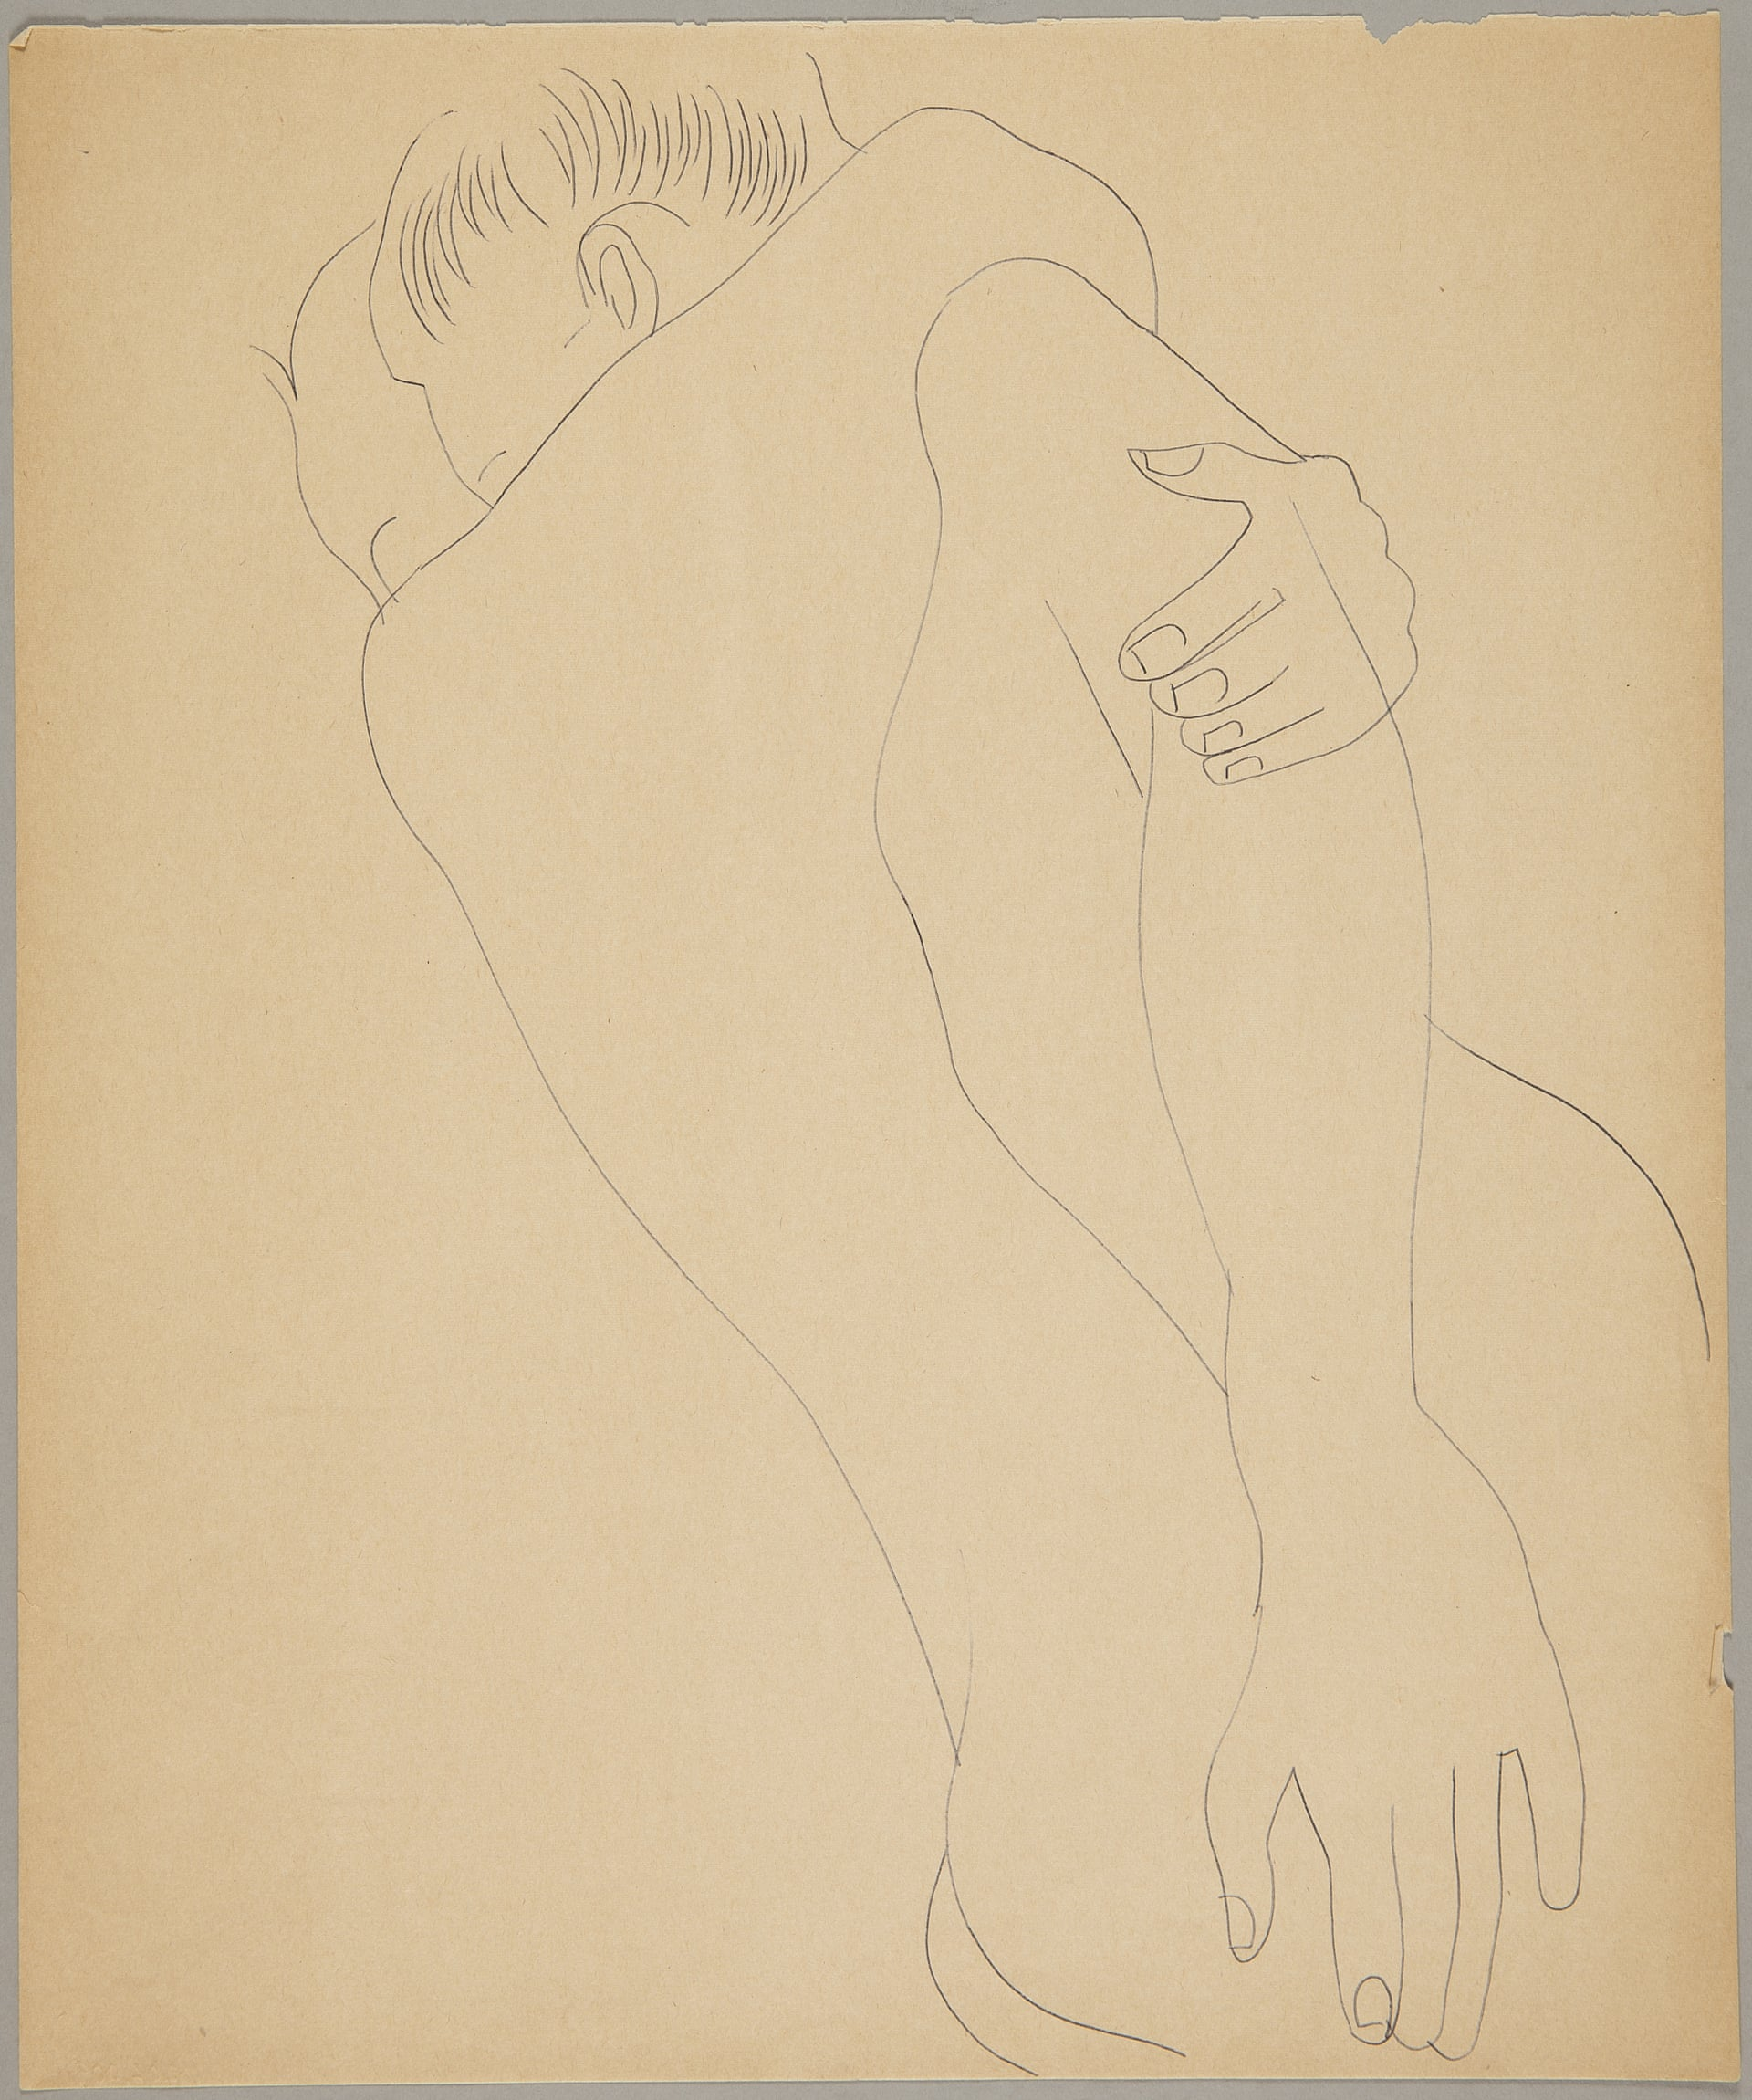 Male Couple c1955 Blue ballpoint on manila paper. Photograph: The Andy Warhol Foundation for the Visual Arts, Inc.